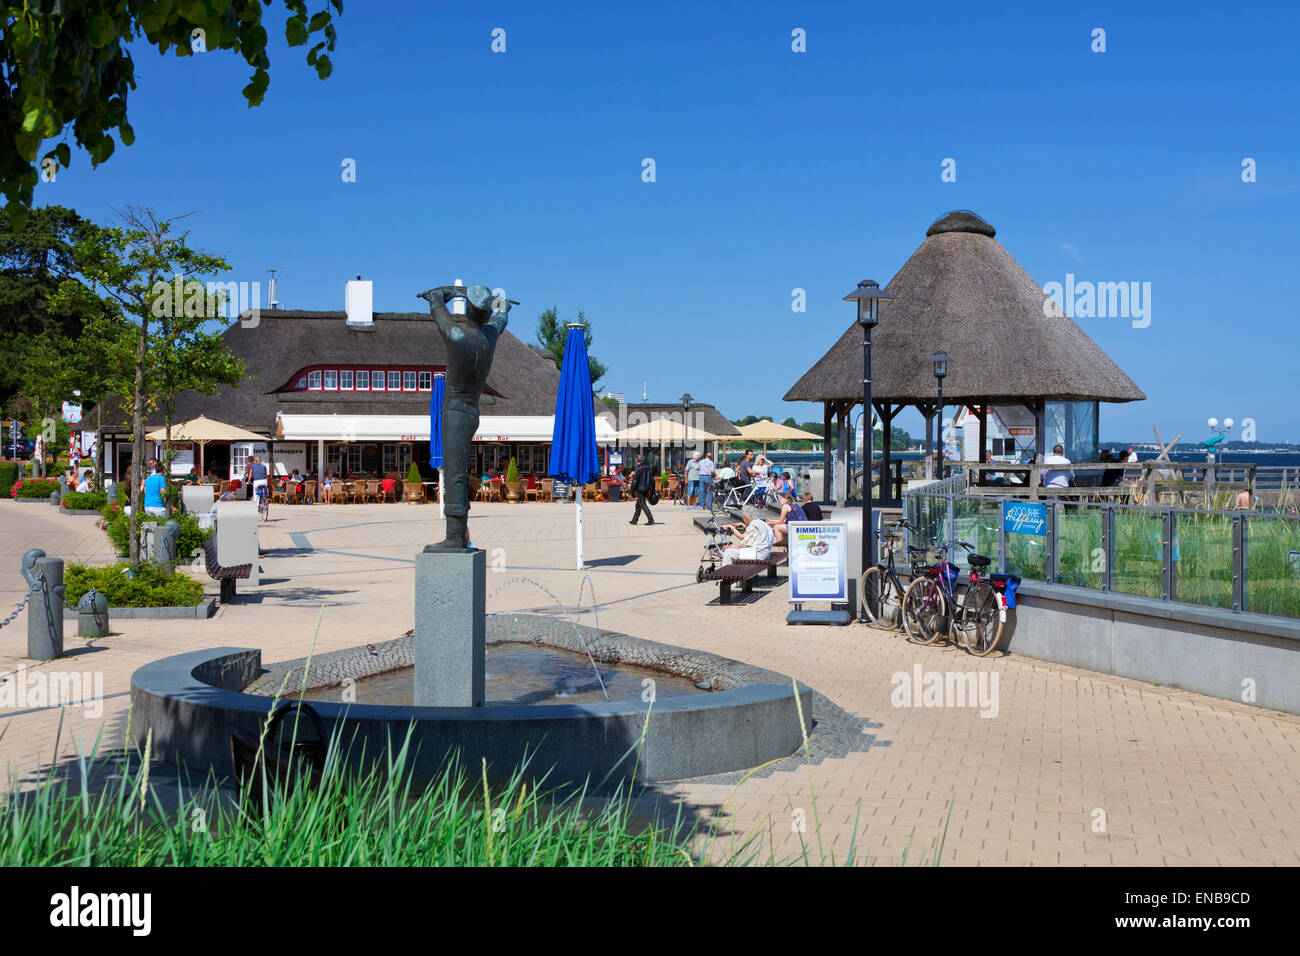 Statue and café restaurant along the promenade at the seaside resort Haffkrug, Scharbeutz, Schleswig-Holstein, - Stock Image